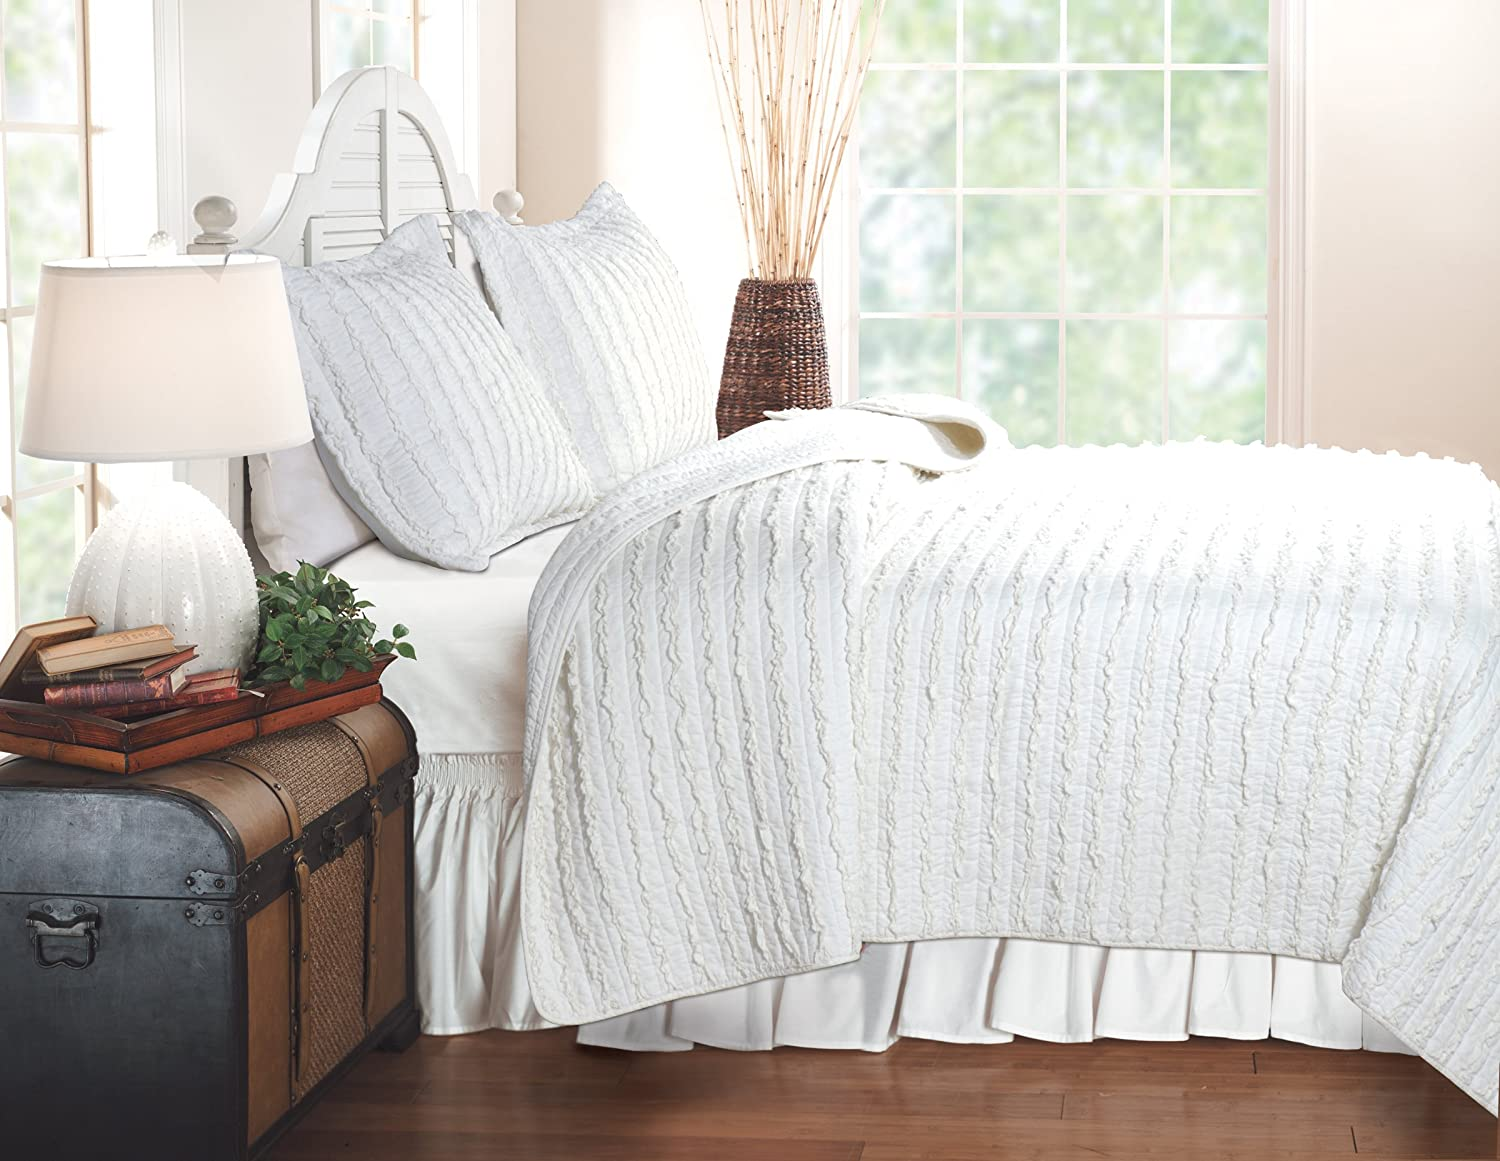 Ruffled Bedding Is Frilly And Feminine Webnuggetz Com